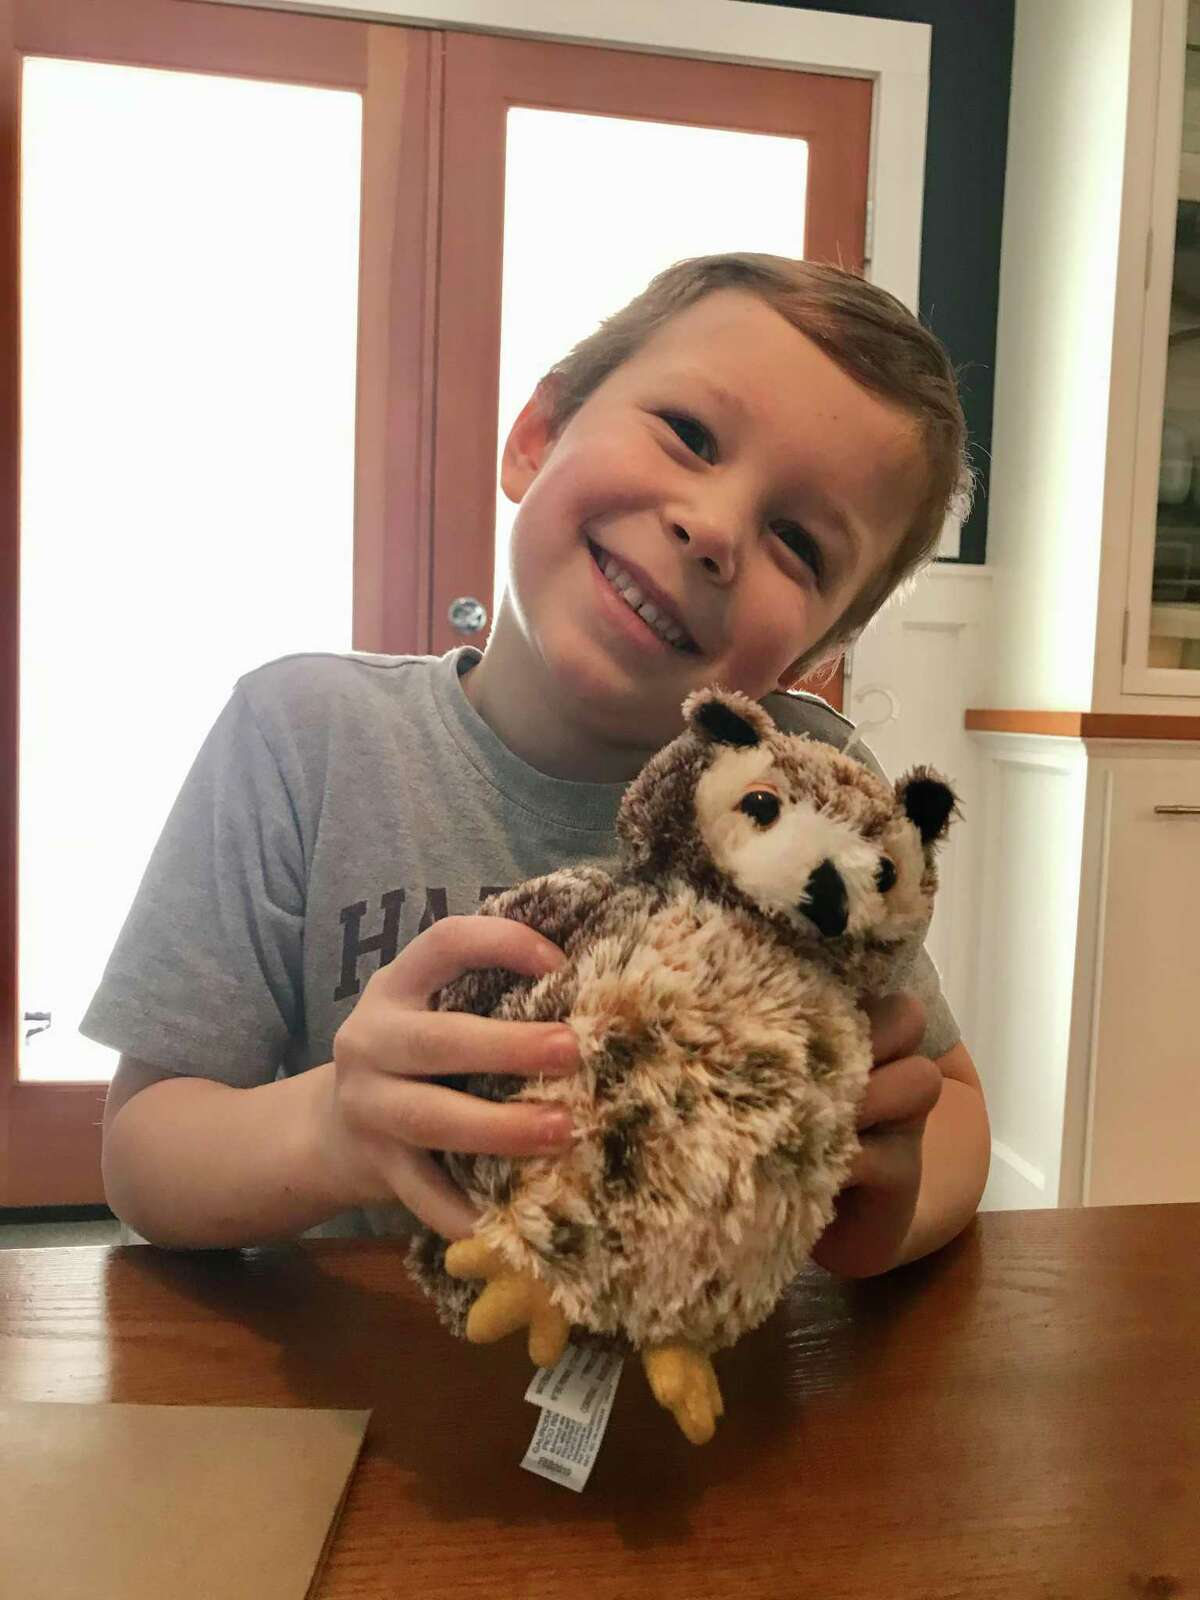 Henry Sampson, 5, of Wilton, with the plush toy owl from the Woodcock Nature Center owl pellet take-home kit.